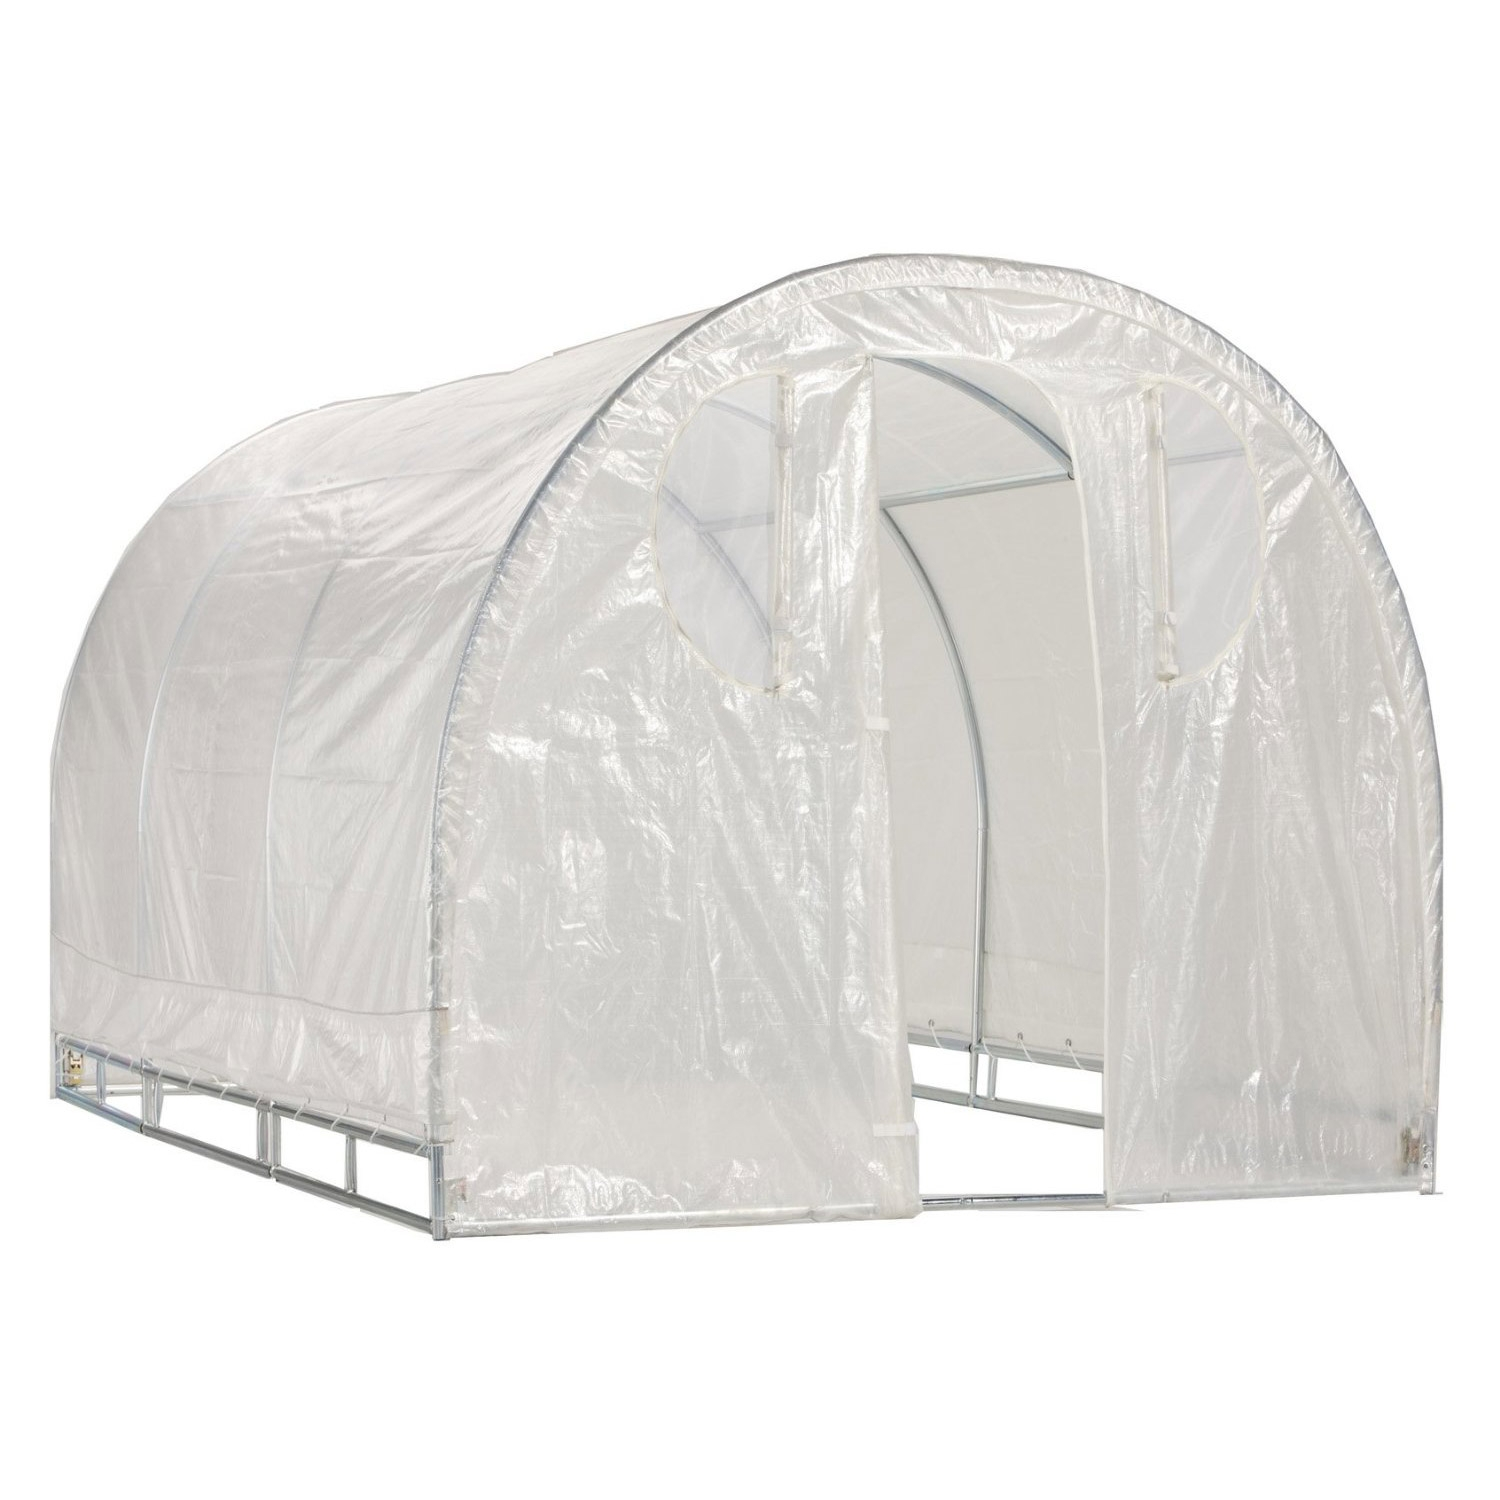 Poly-tunnel Hoop House Style Greenhouse (6' x 8'),  PTHSG6X8 : Designed as the highest quality, most compact, space saver green house packaged in a retail box. This Polytunnel hoop-house cold-frame style High-Tunnel features a space saver design.  The modern greenhouse offers all of the same quality, workmanship, and results as the Commercial Series Green House while appealing to beginner, novice, and professional growers alike. Each Deck and Patio greenhouse is constructed from100% commercial grade galvanized steel frame – featuring quick connect steel frame and steel frame connectors. It includes a rugged all weather triple layer Polyurethane, cover, back panel, and front entry. Rust resistant galvanized steel. The frame components and frame connectors are galvanized after being welded. This Greenhouse provides maximum protection, growth, and reliability by using a complete three piece all growth fabric construction with unit-body cover, solid connected back panel, and solid connected front entry – allowing for easy access and maintenance of plants, vegetables and herbs. It also utilizes Smart Vent – technology controlling airflow from the base of the unit and the ends of the unit with special zip out Velcro held screened vented windows. In addition the triple ridge reinforced roof structure not only acts as a weather guardian protecting against severe and inclement weather but also allows growing enthusiasts to hang their full size basket plants from the roof of the green house.